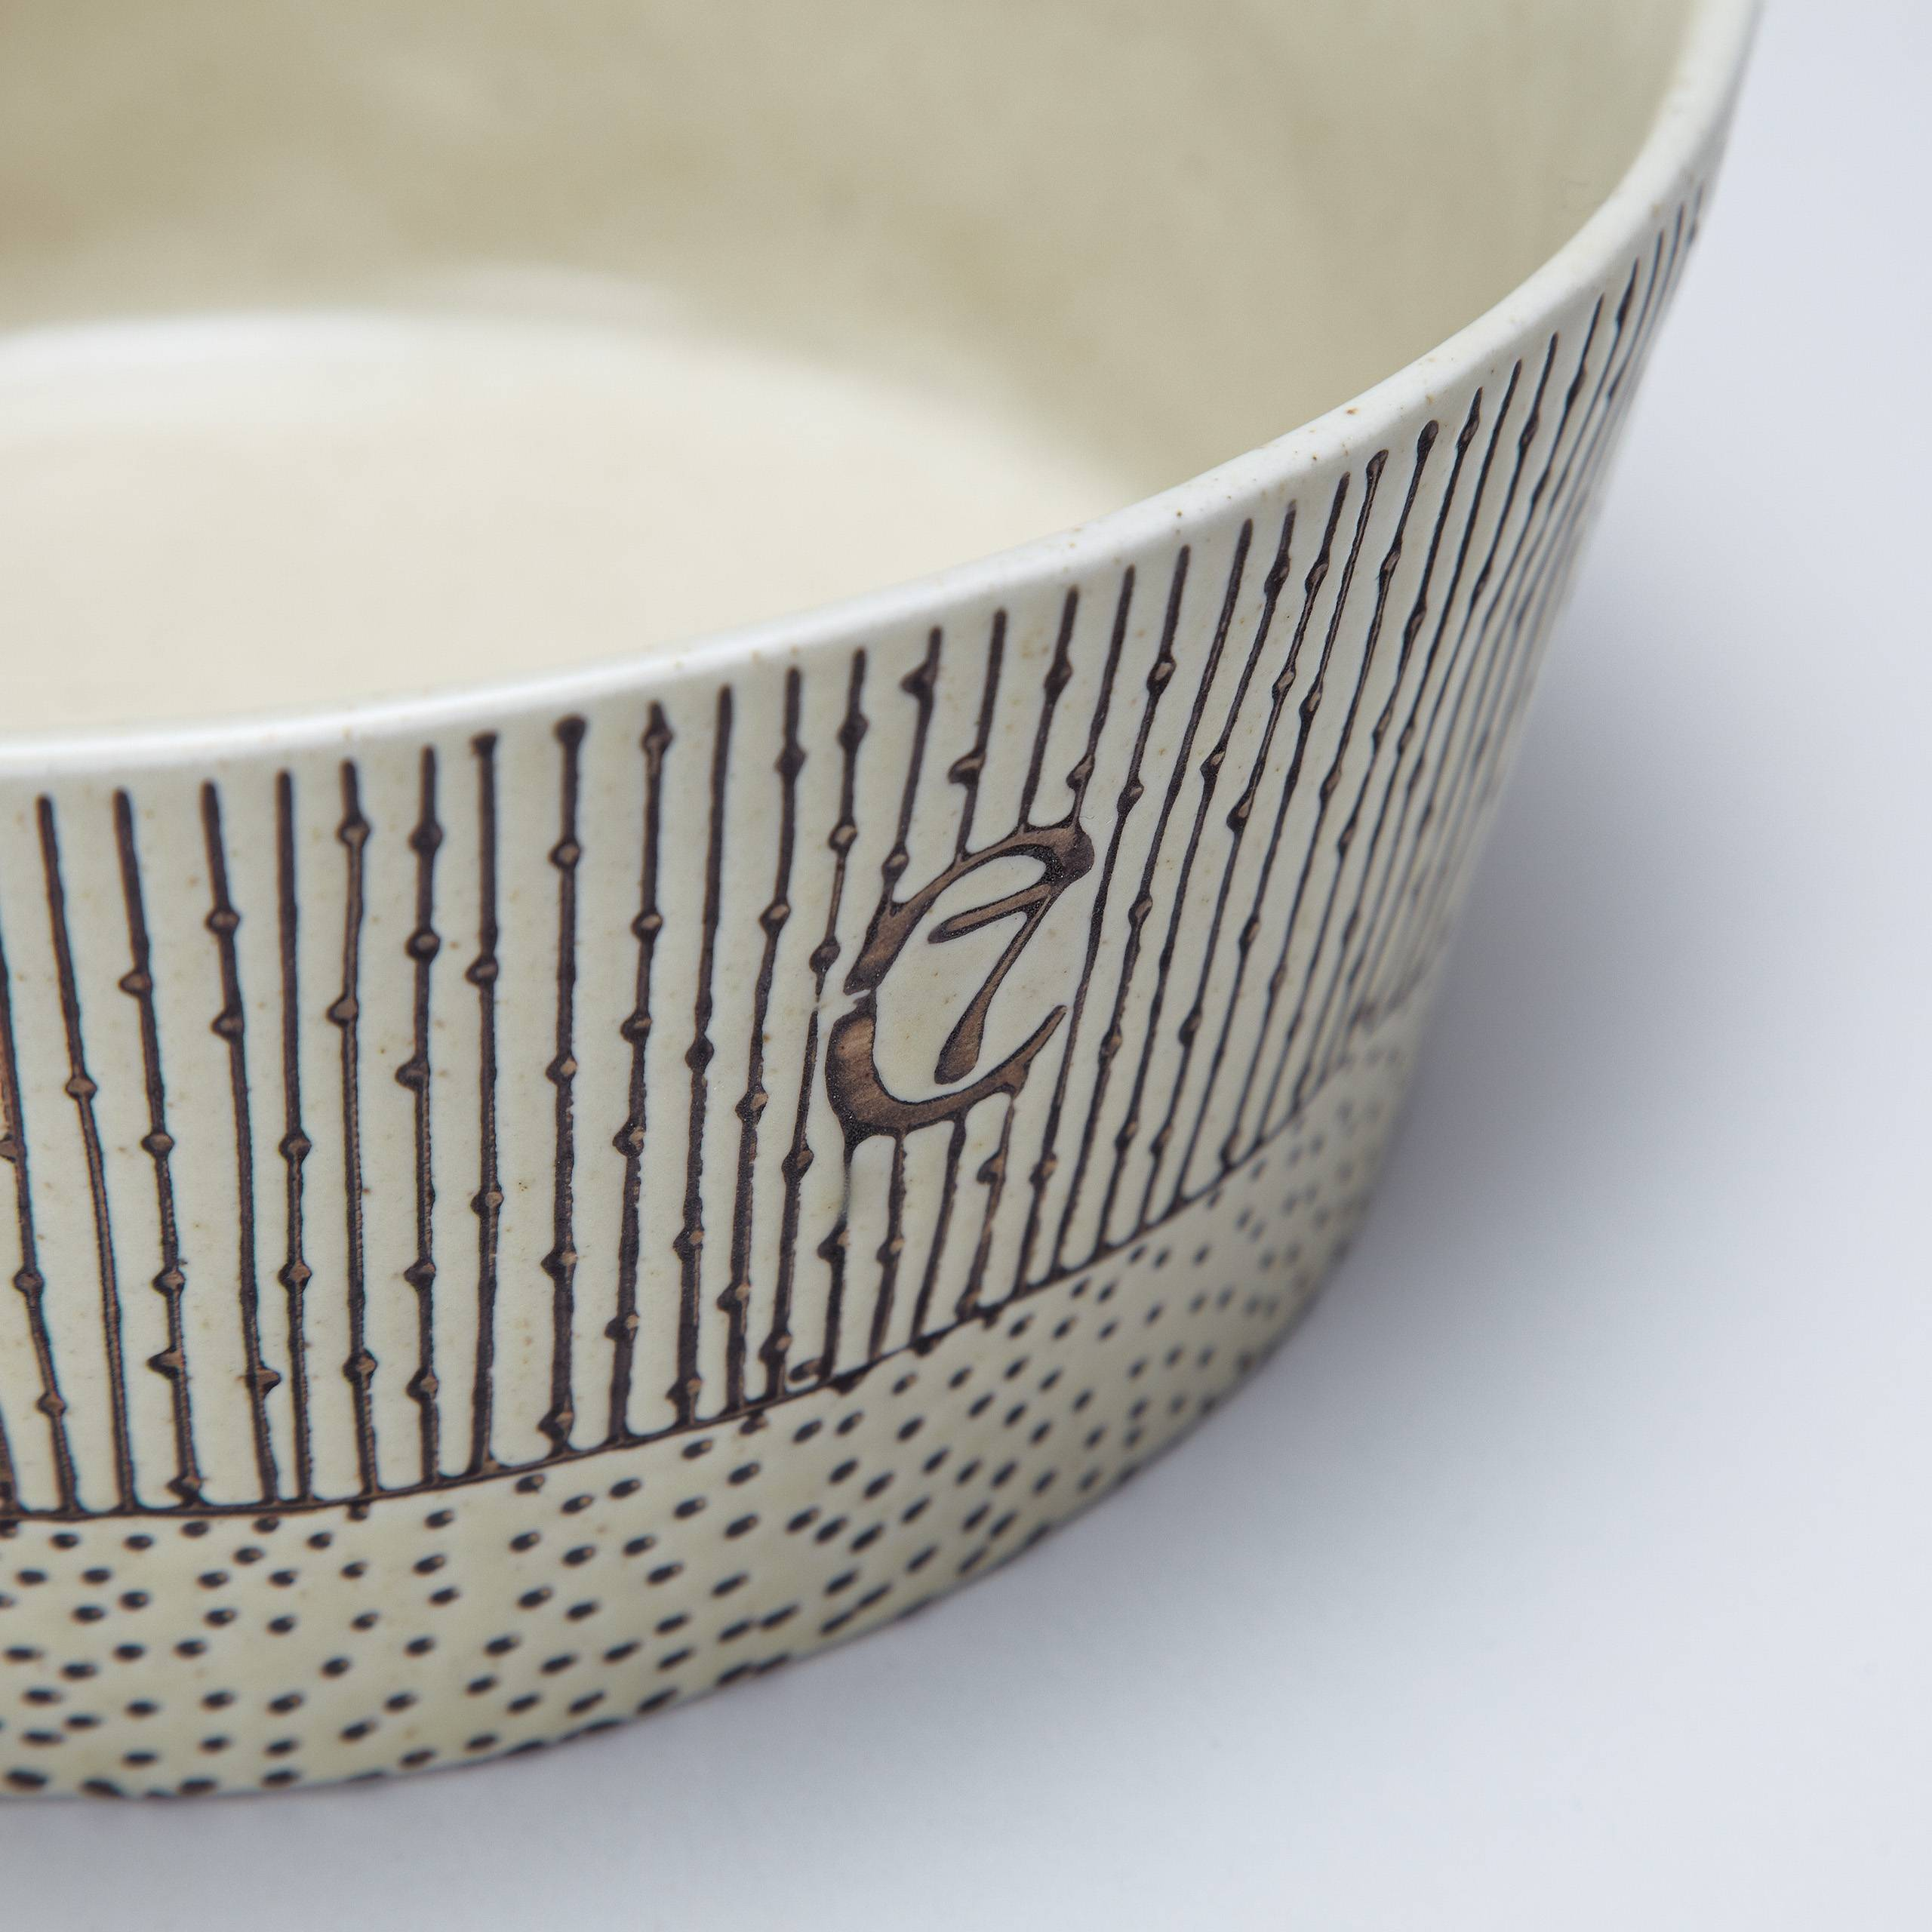 stylish ceramic dog bowl with stripes